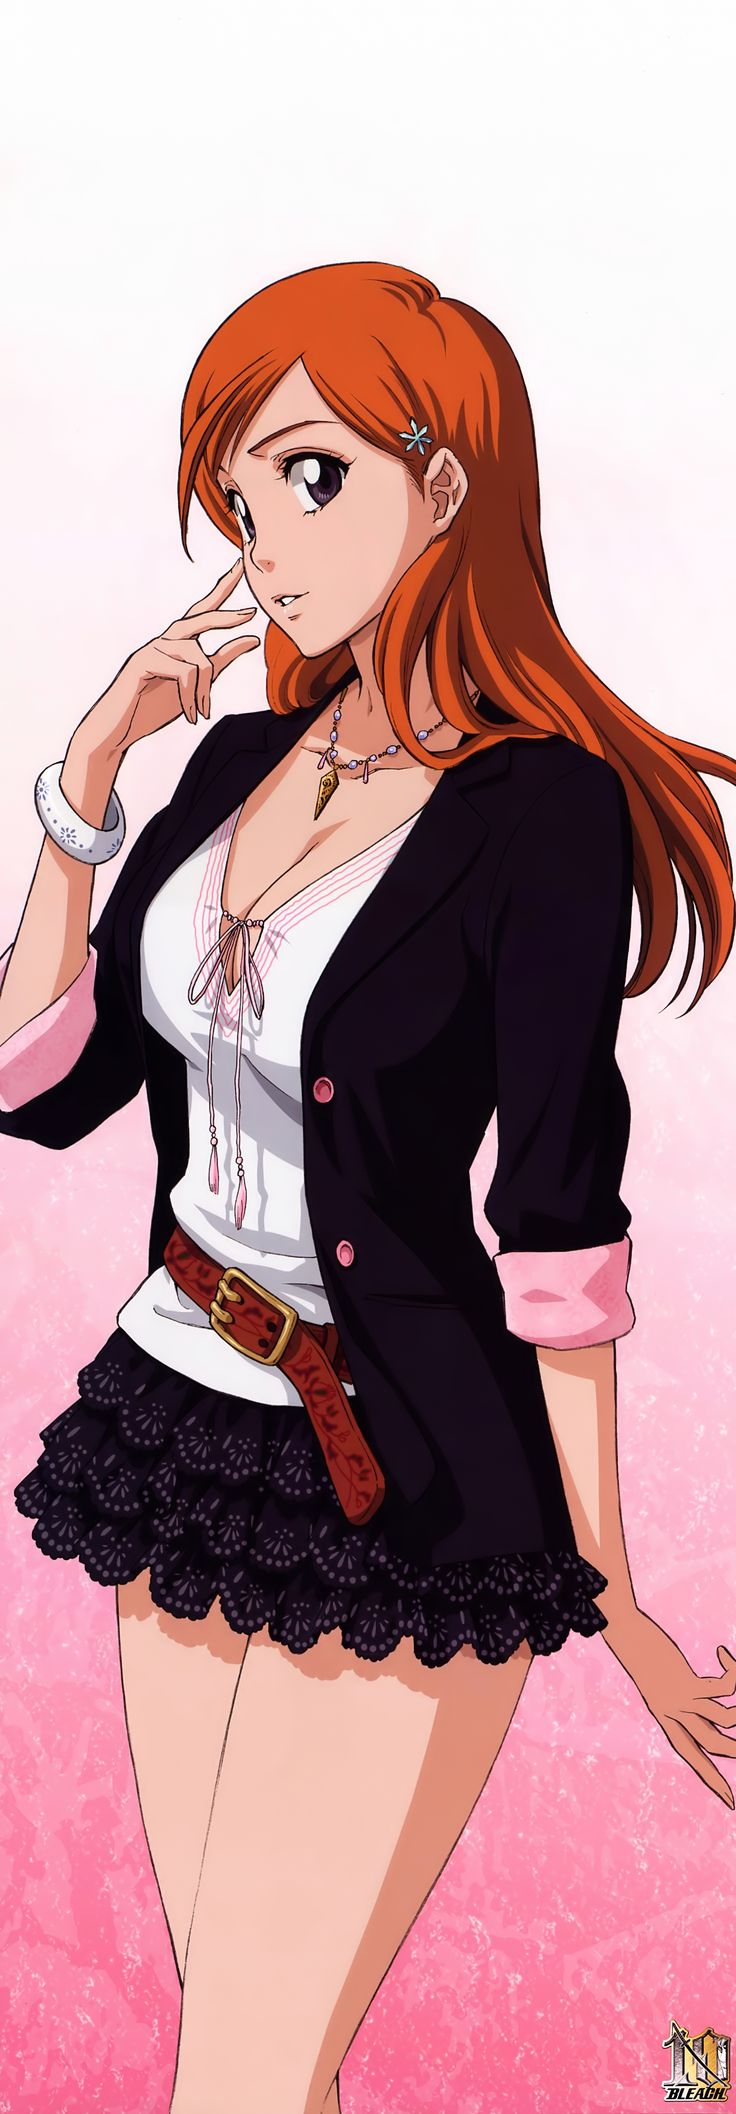 Showing Xxx Images For Orihime Inoue Costumes Porn Xxx -3934